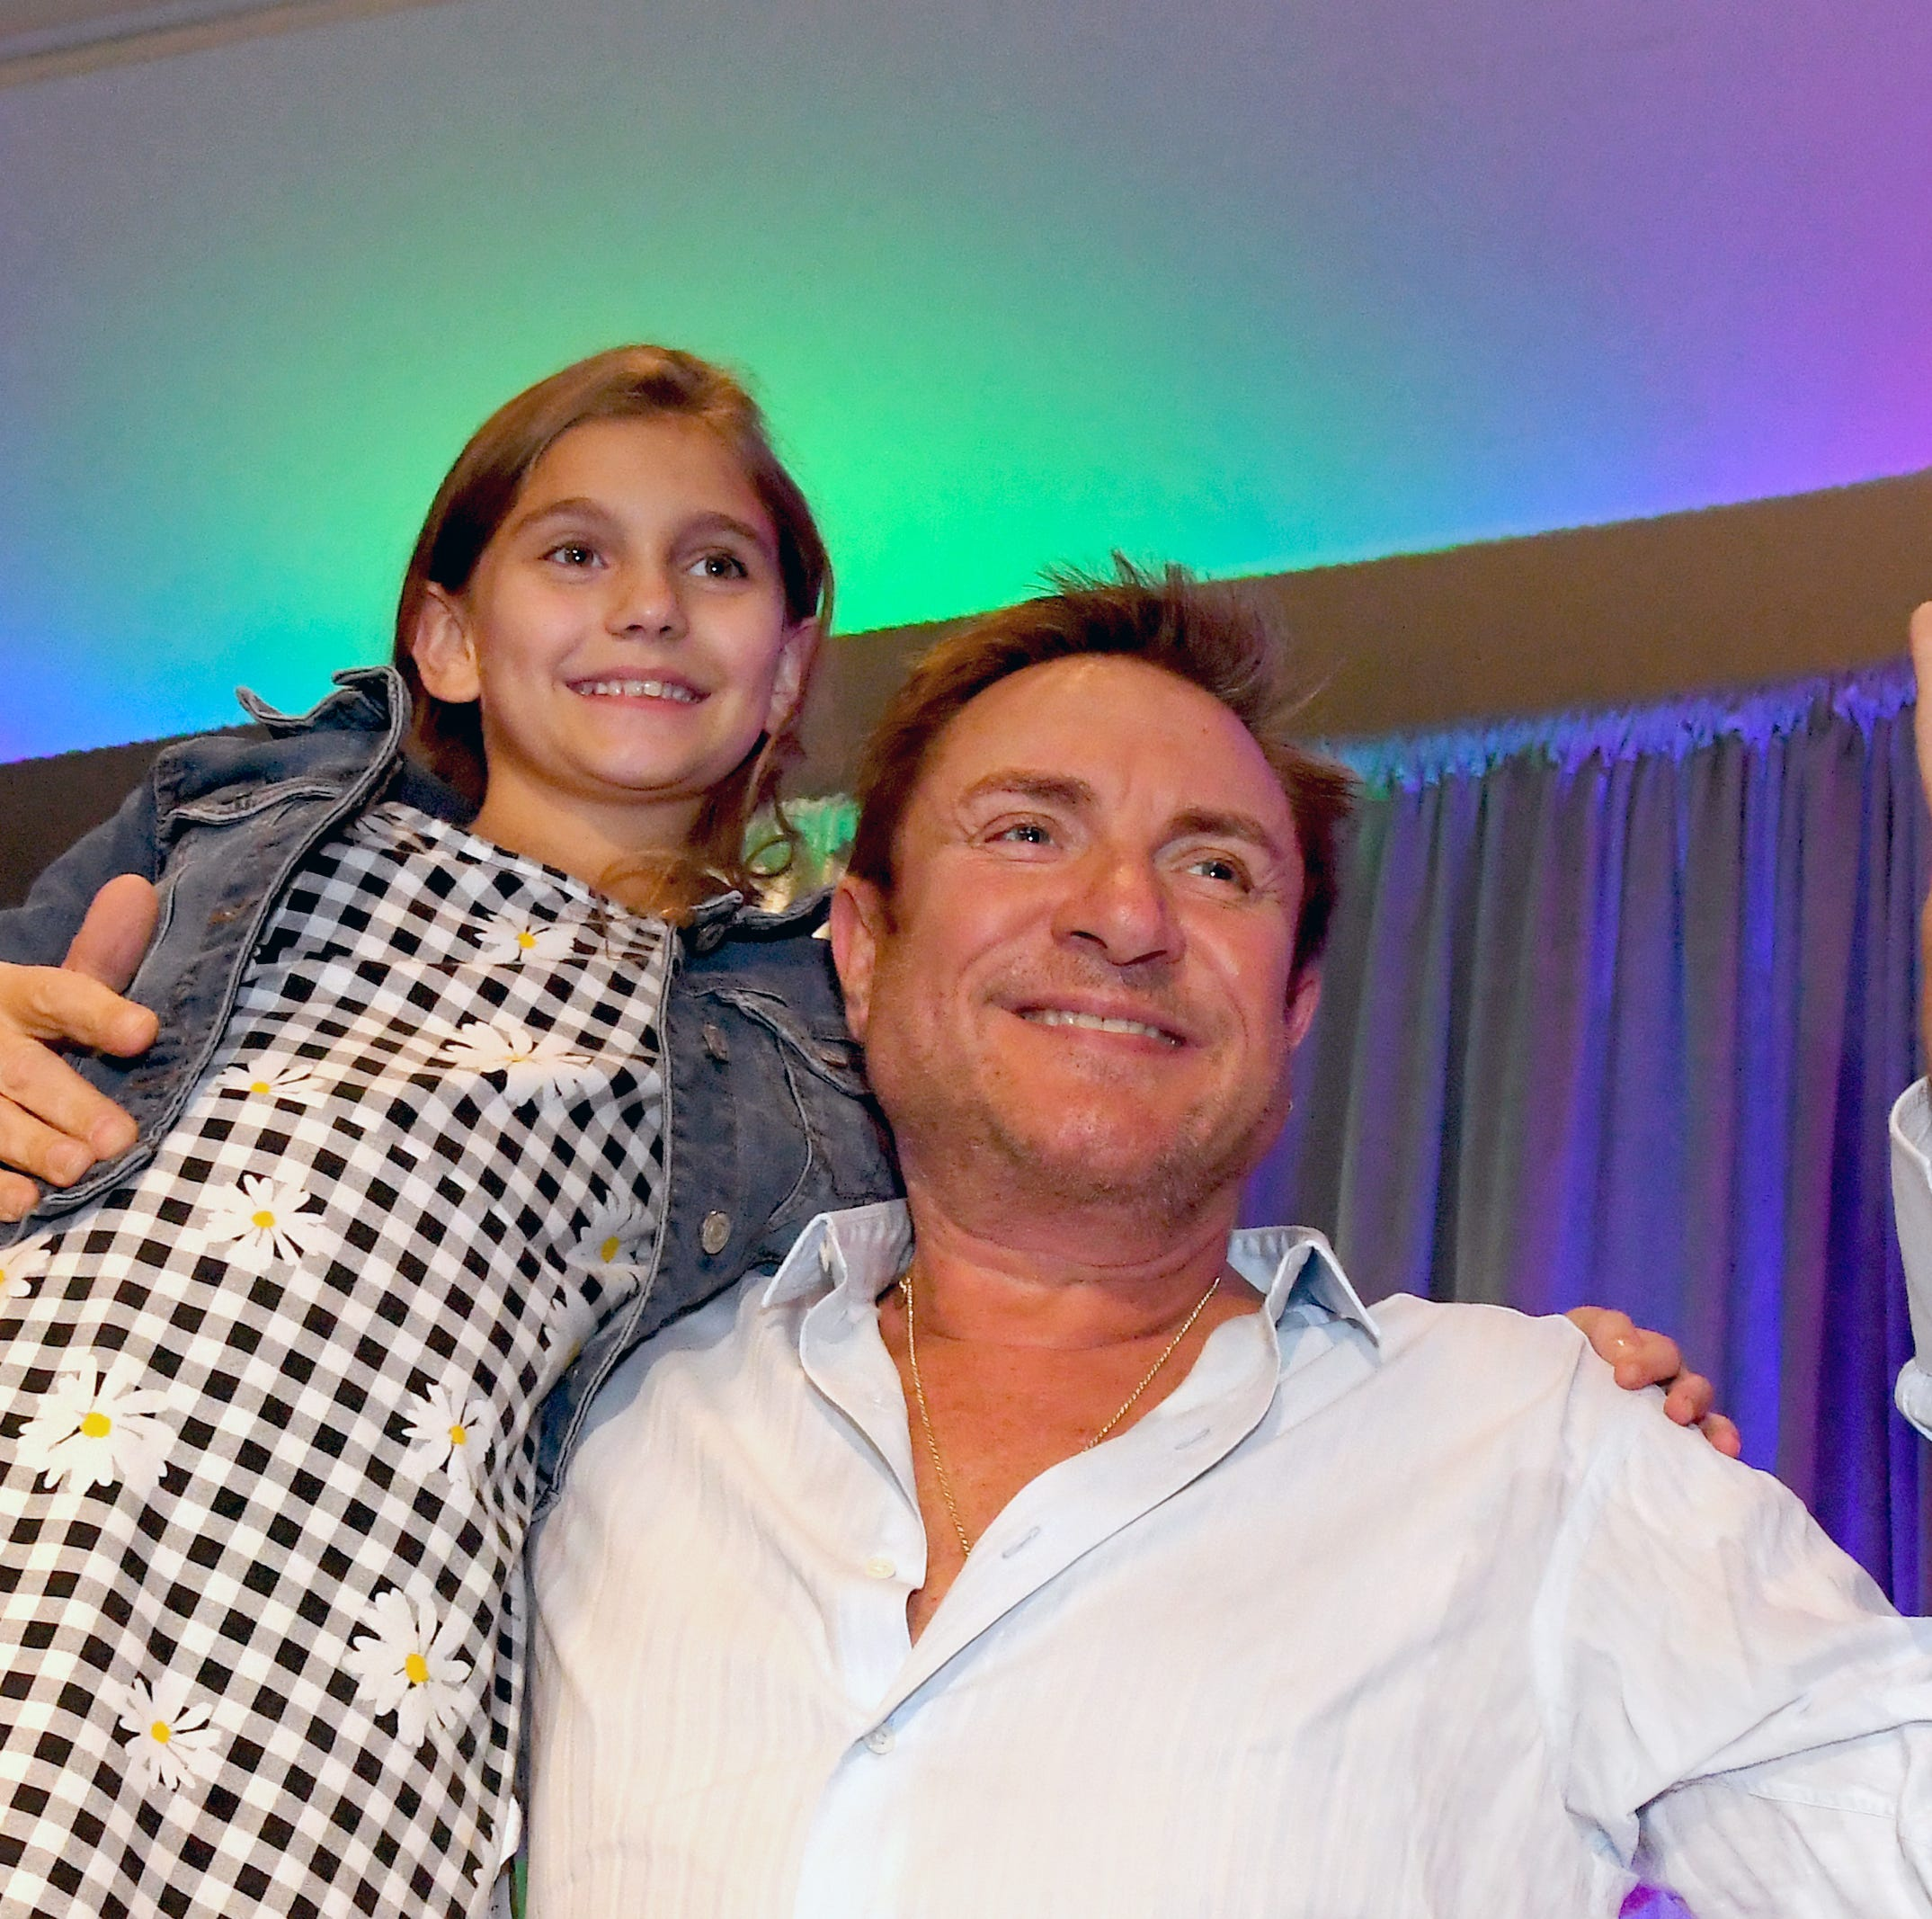 Her name is Rio: Simon Le Bon of Duran Duran explains 'Rio' song to 9-year-old girl named Rio